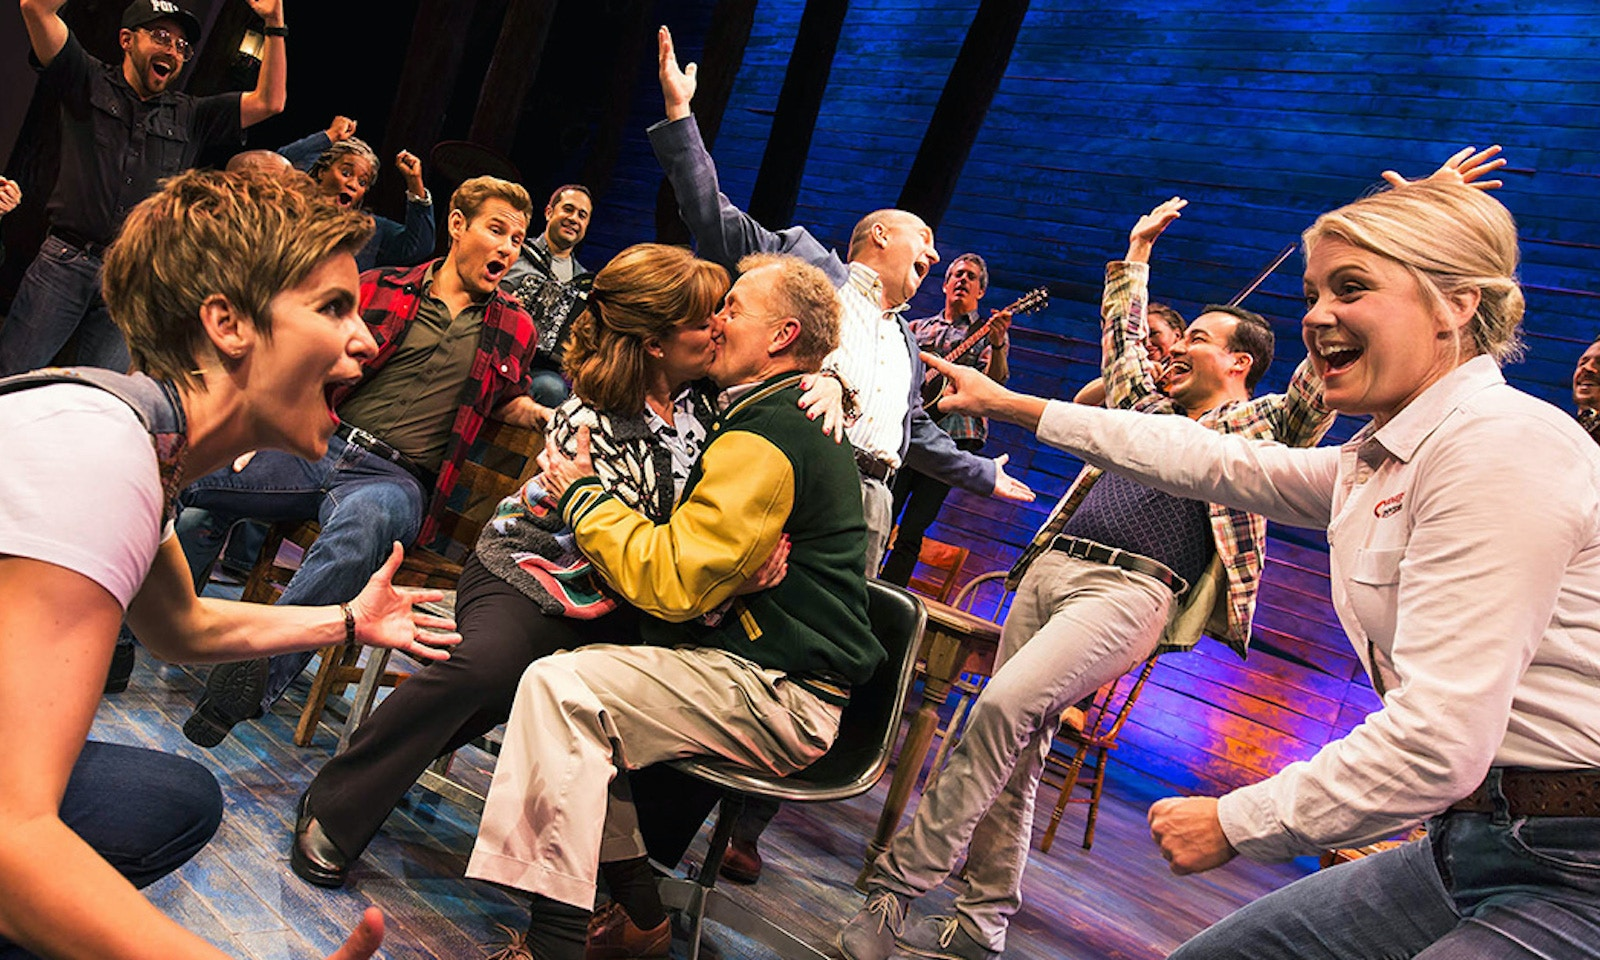 Come From Away - A Breathtaking True Story